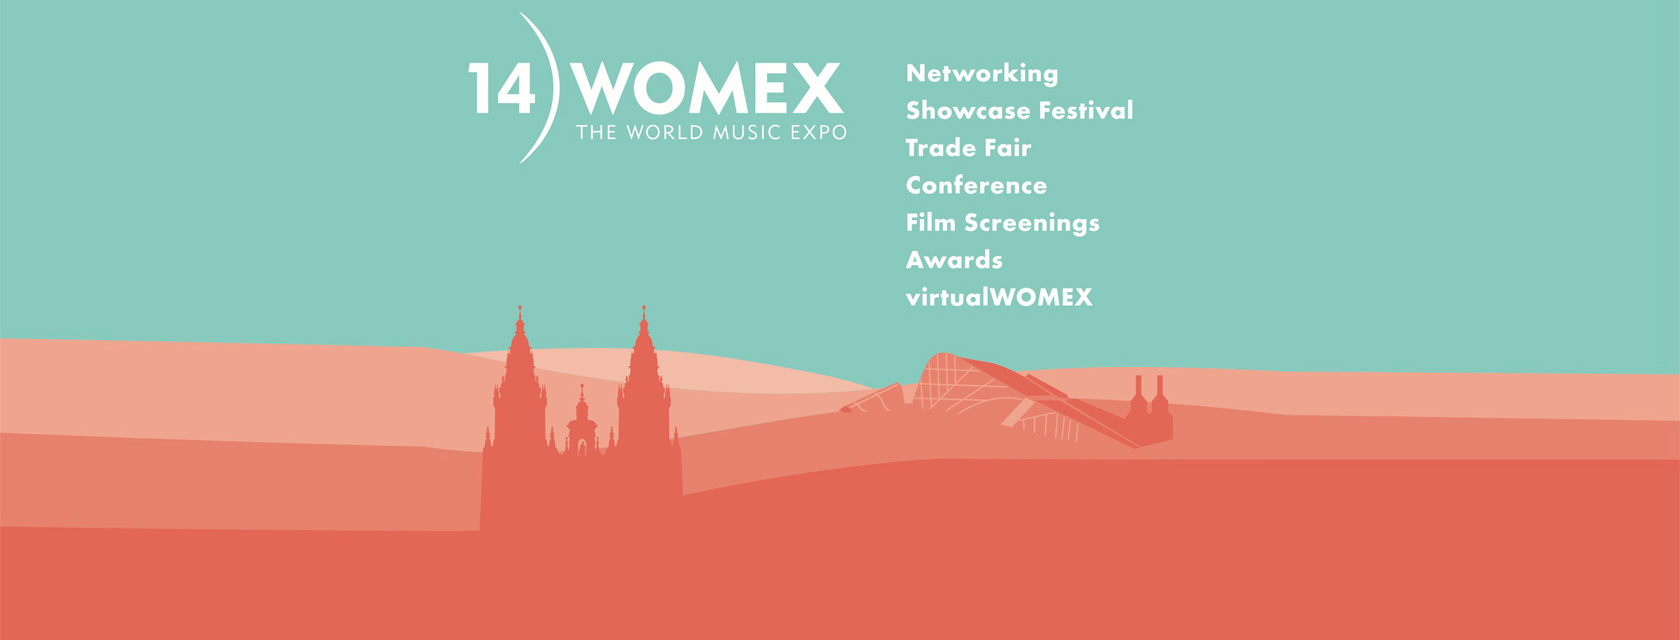 WOMEX 14